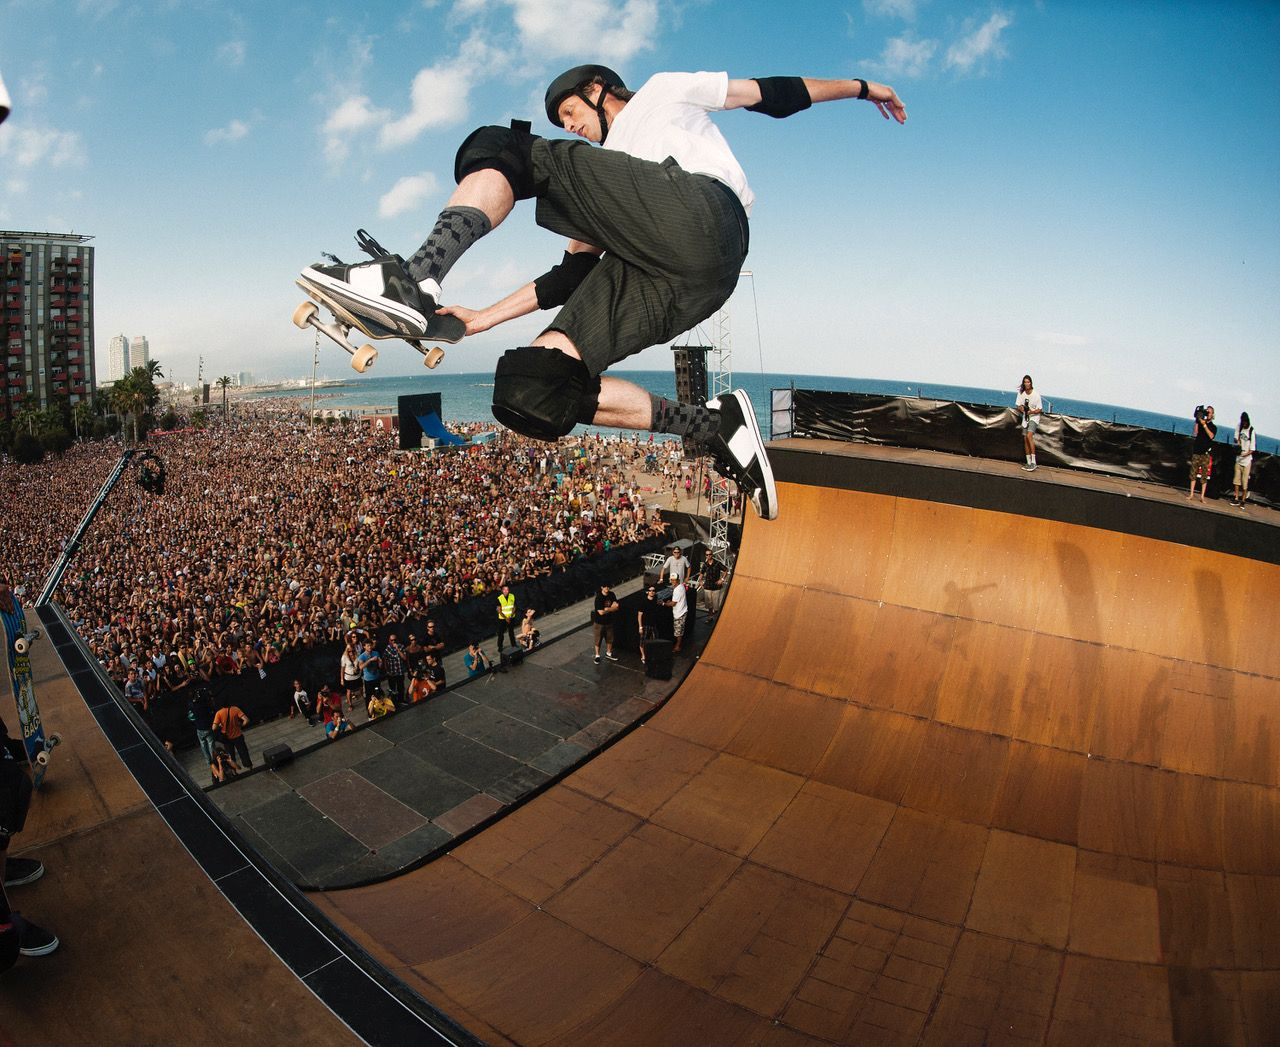 Skateboarding Girl Wallpaper Hd Tony Hawk At 50 Skateboarding Legend Talks Career Fame